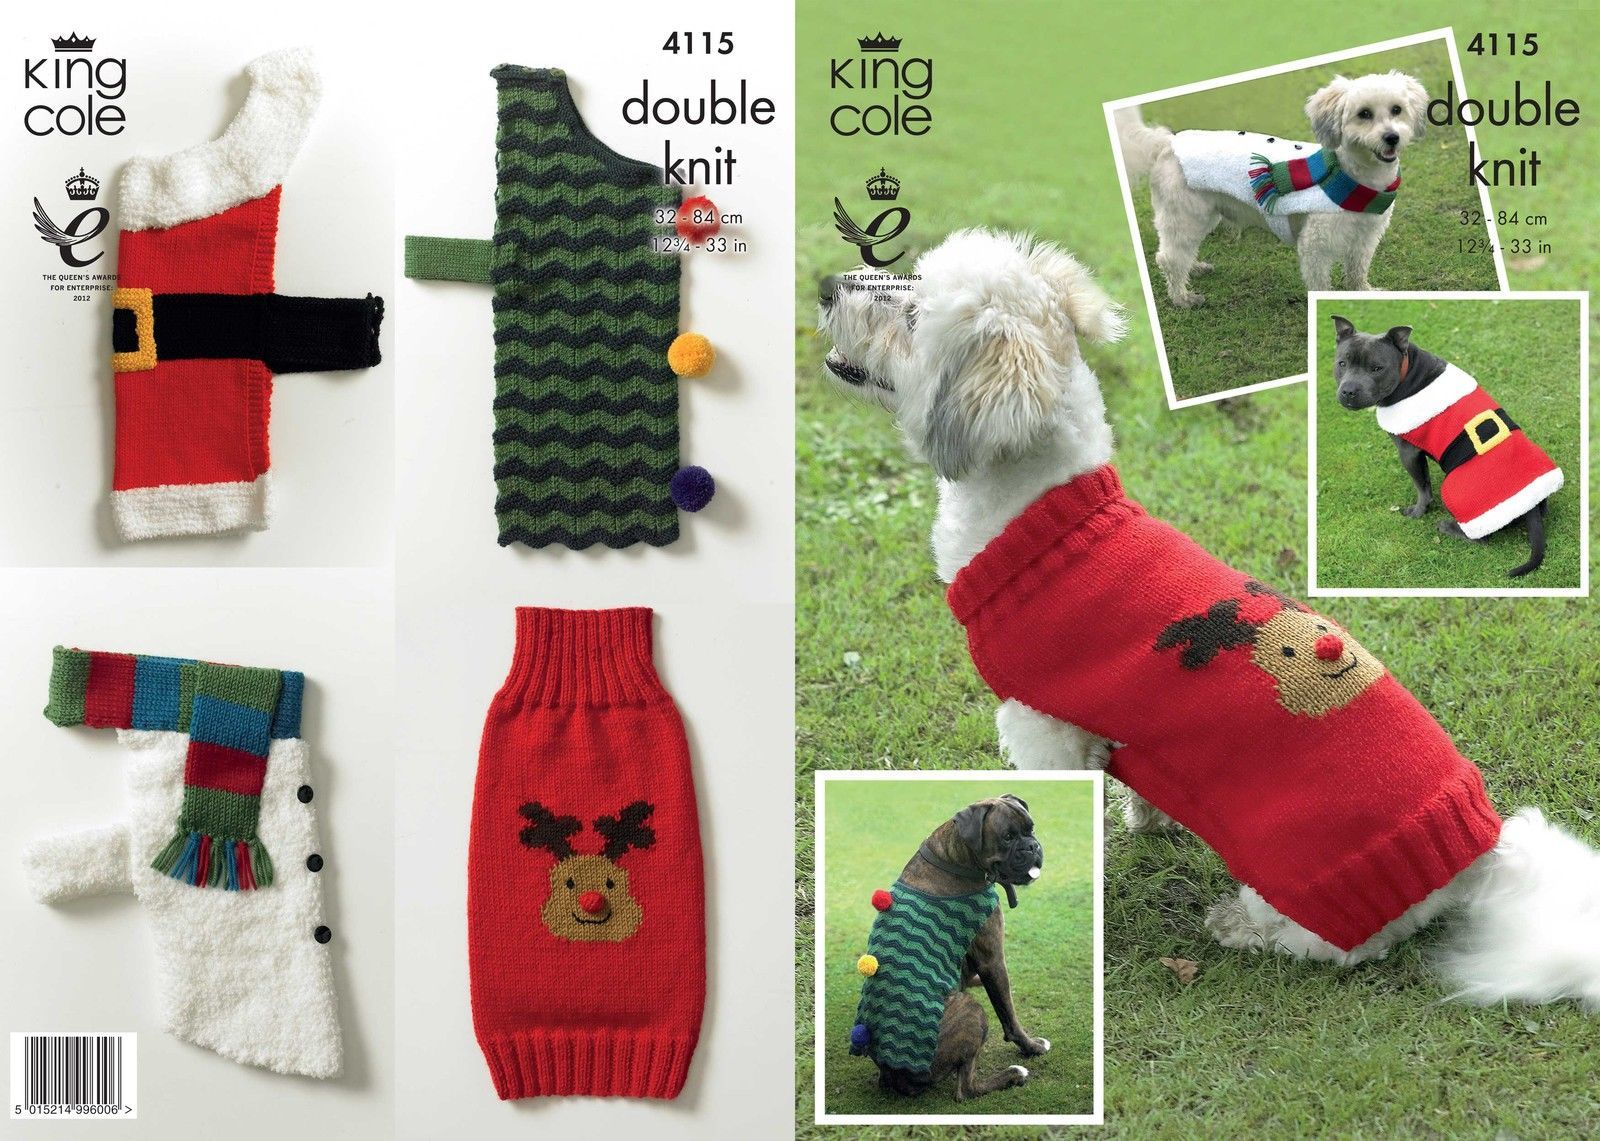 Dog Coat Knitting Pattern Uk : King cole dk christmas dog coat knitting pattern